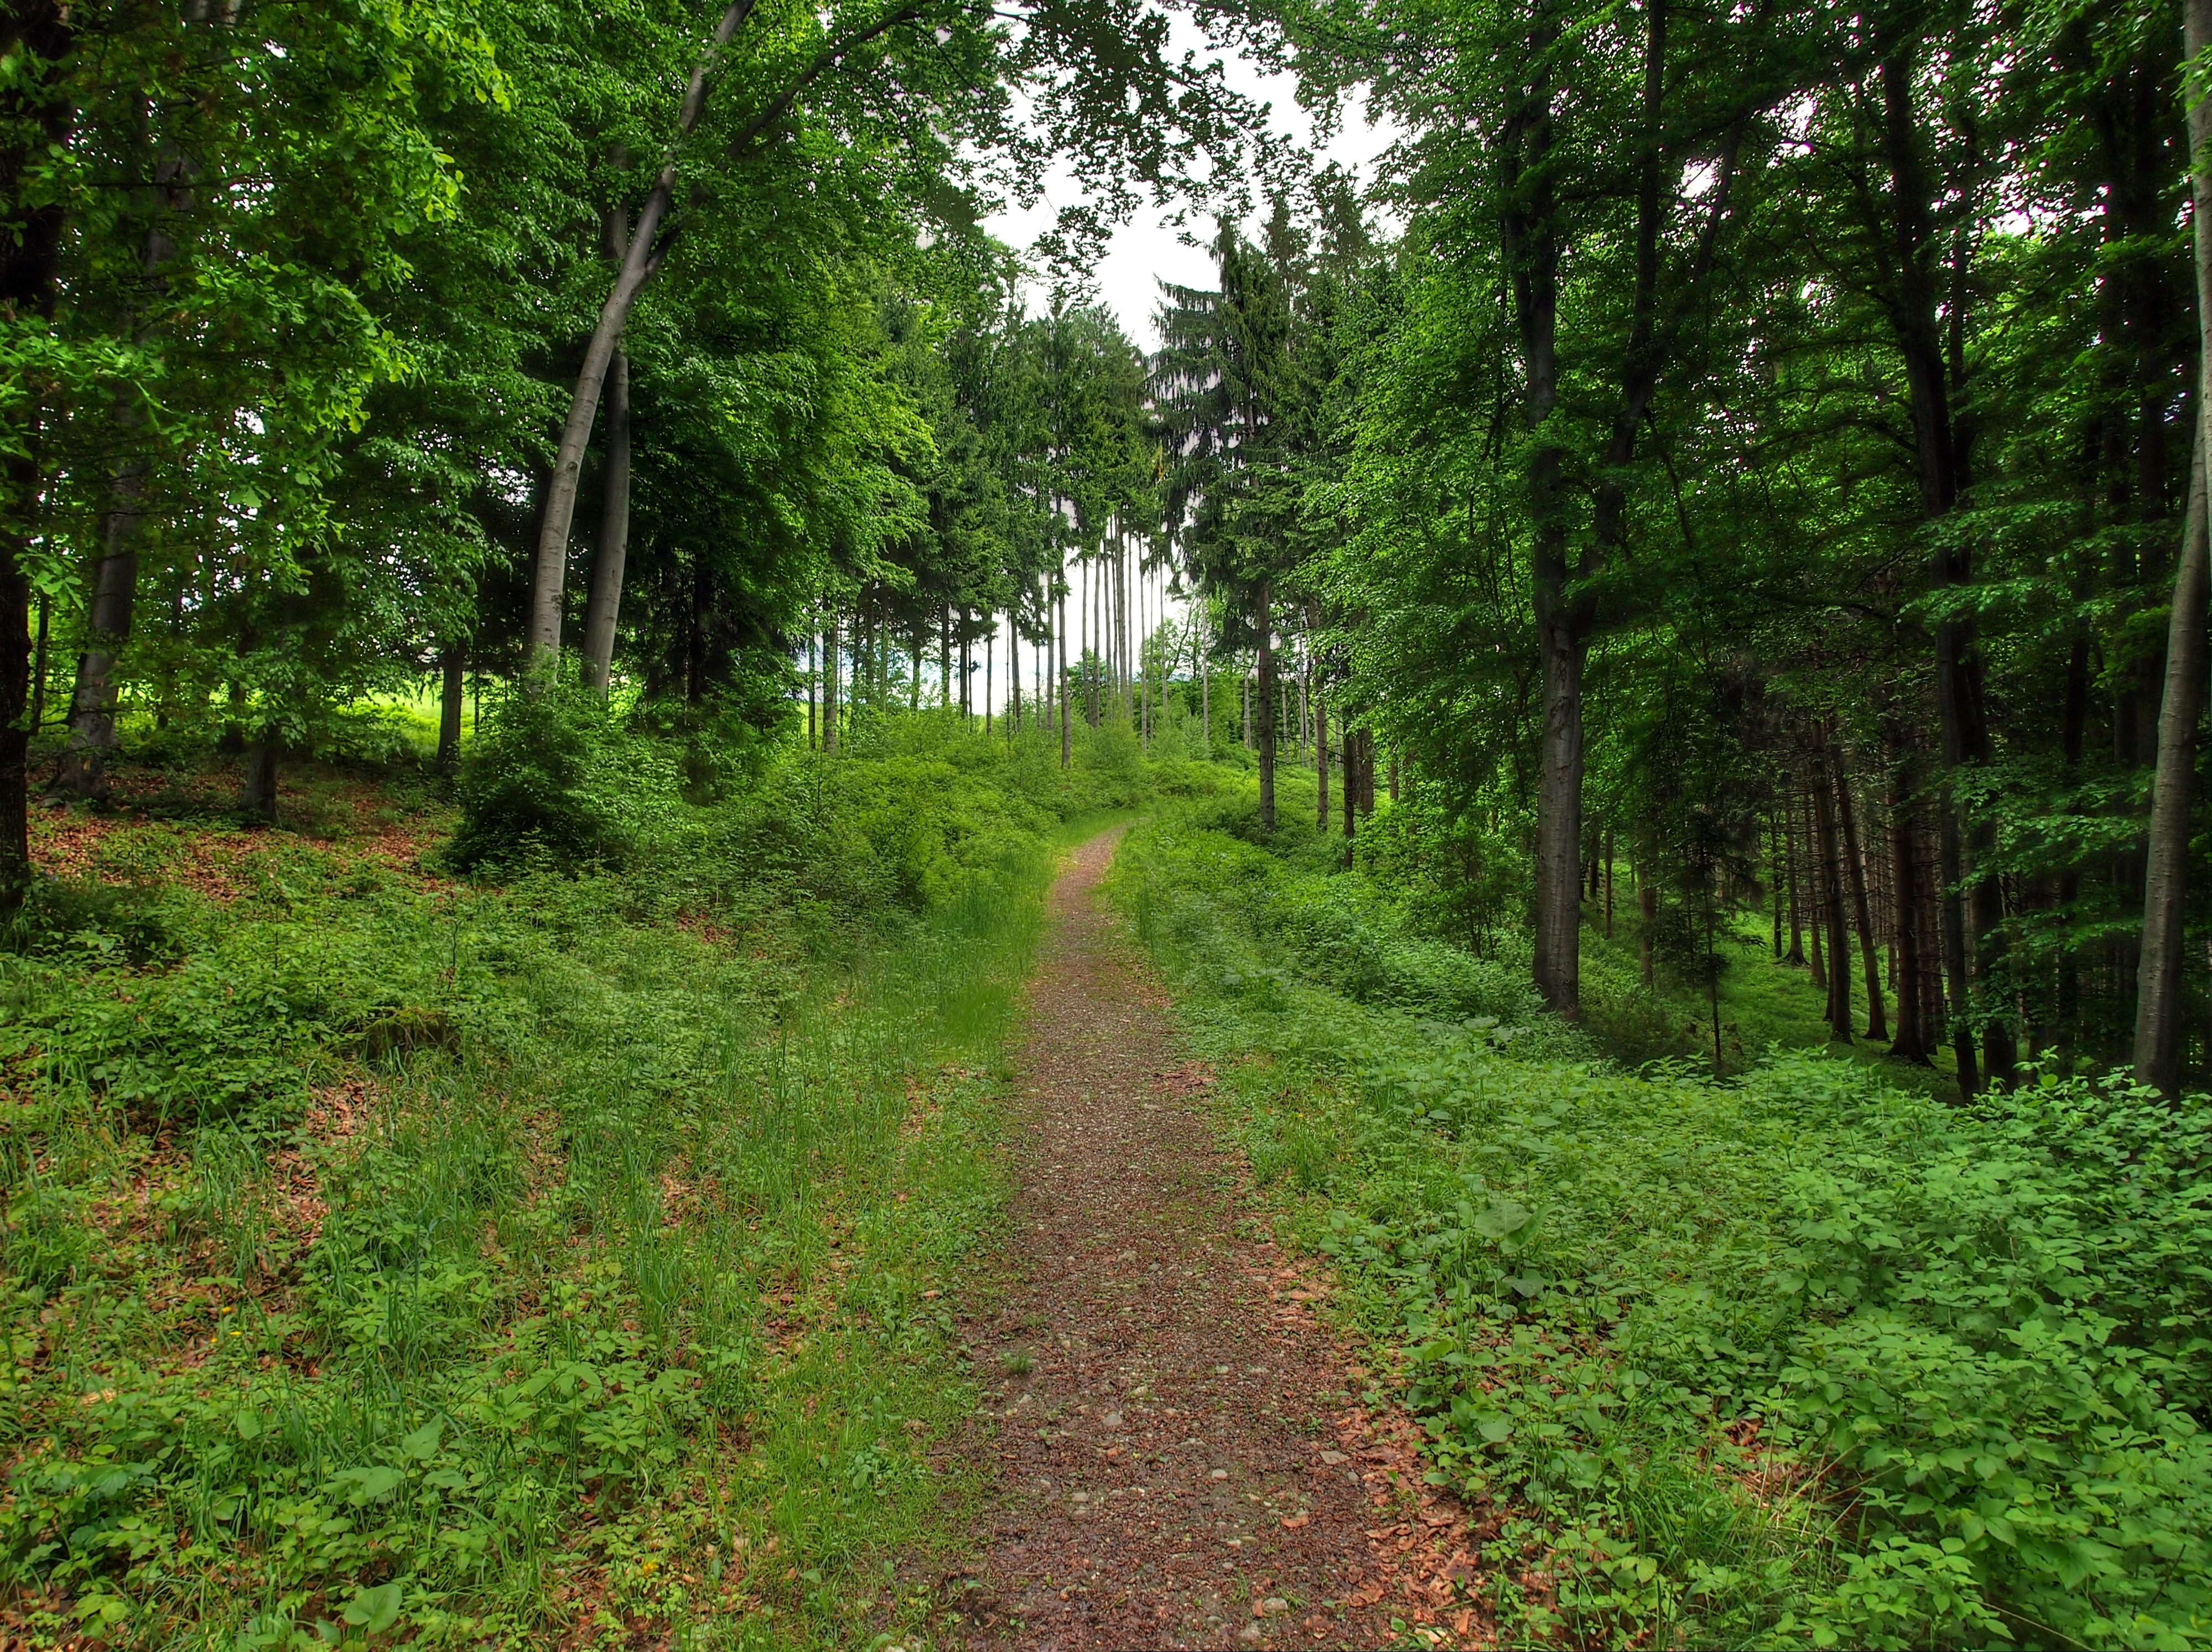 122226 download wallpaper Landscape, Nature, Forest, Path screensavers and pictures for free